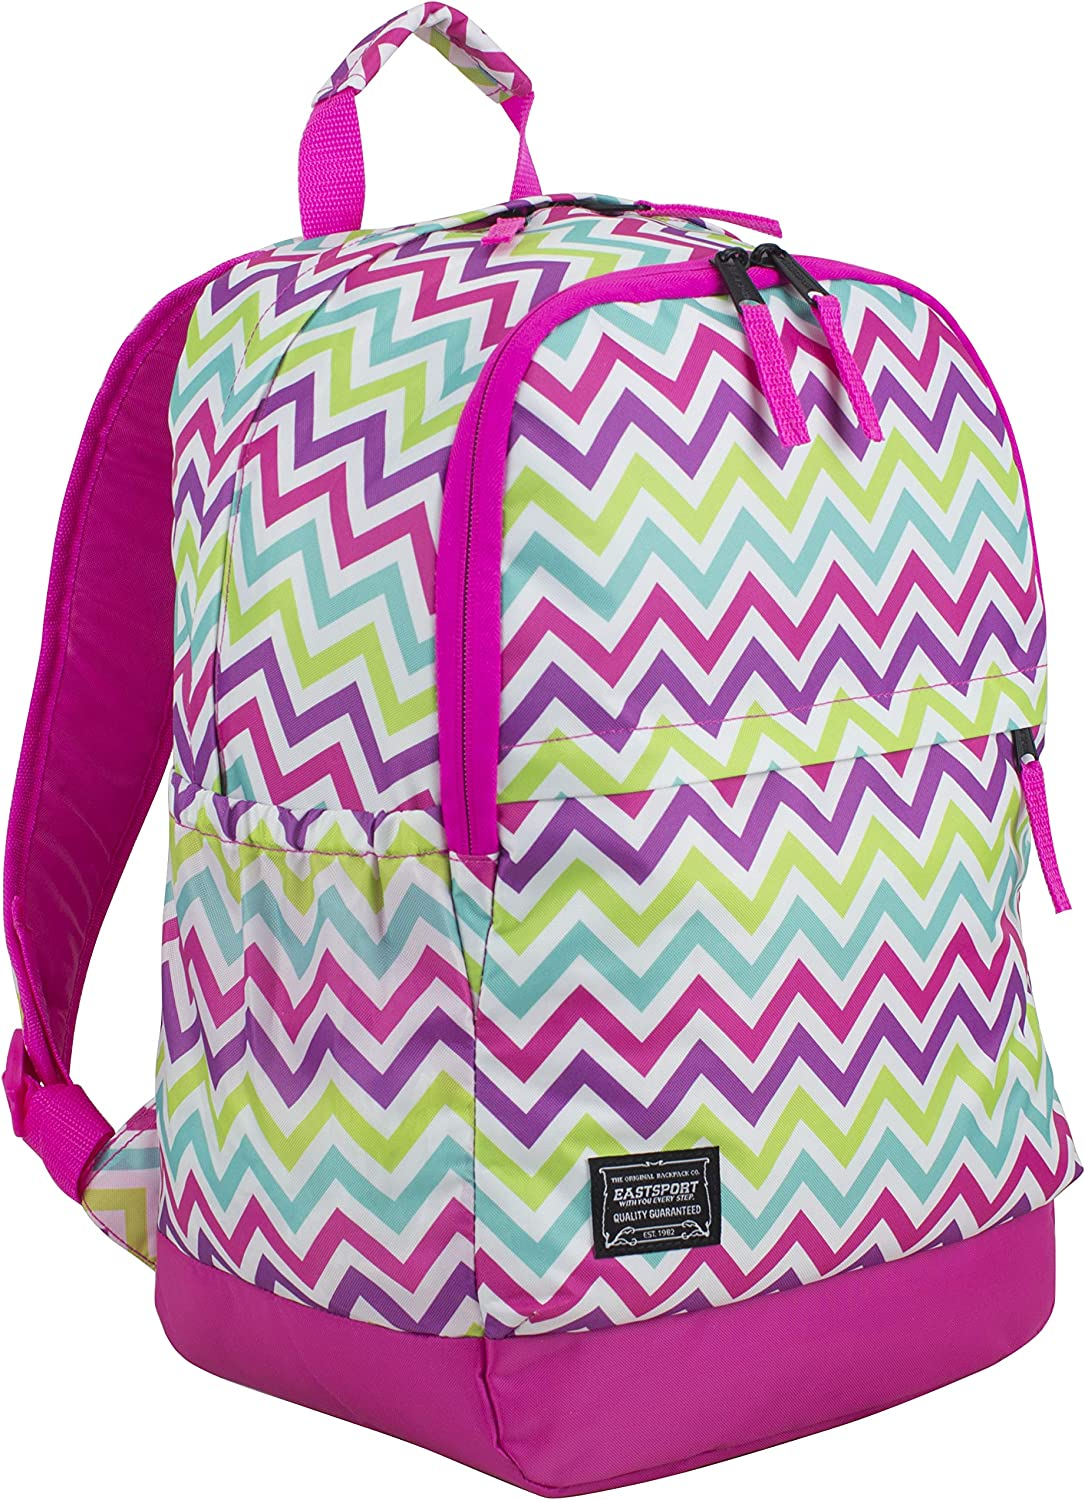 Hot Pink//Spike Chevron Print 118730PW-SPC Eastsport Everyday Classic Backpack with Interior Tech Sleeve